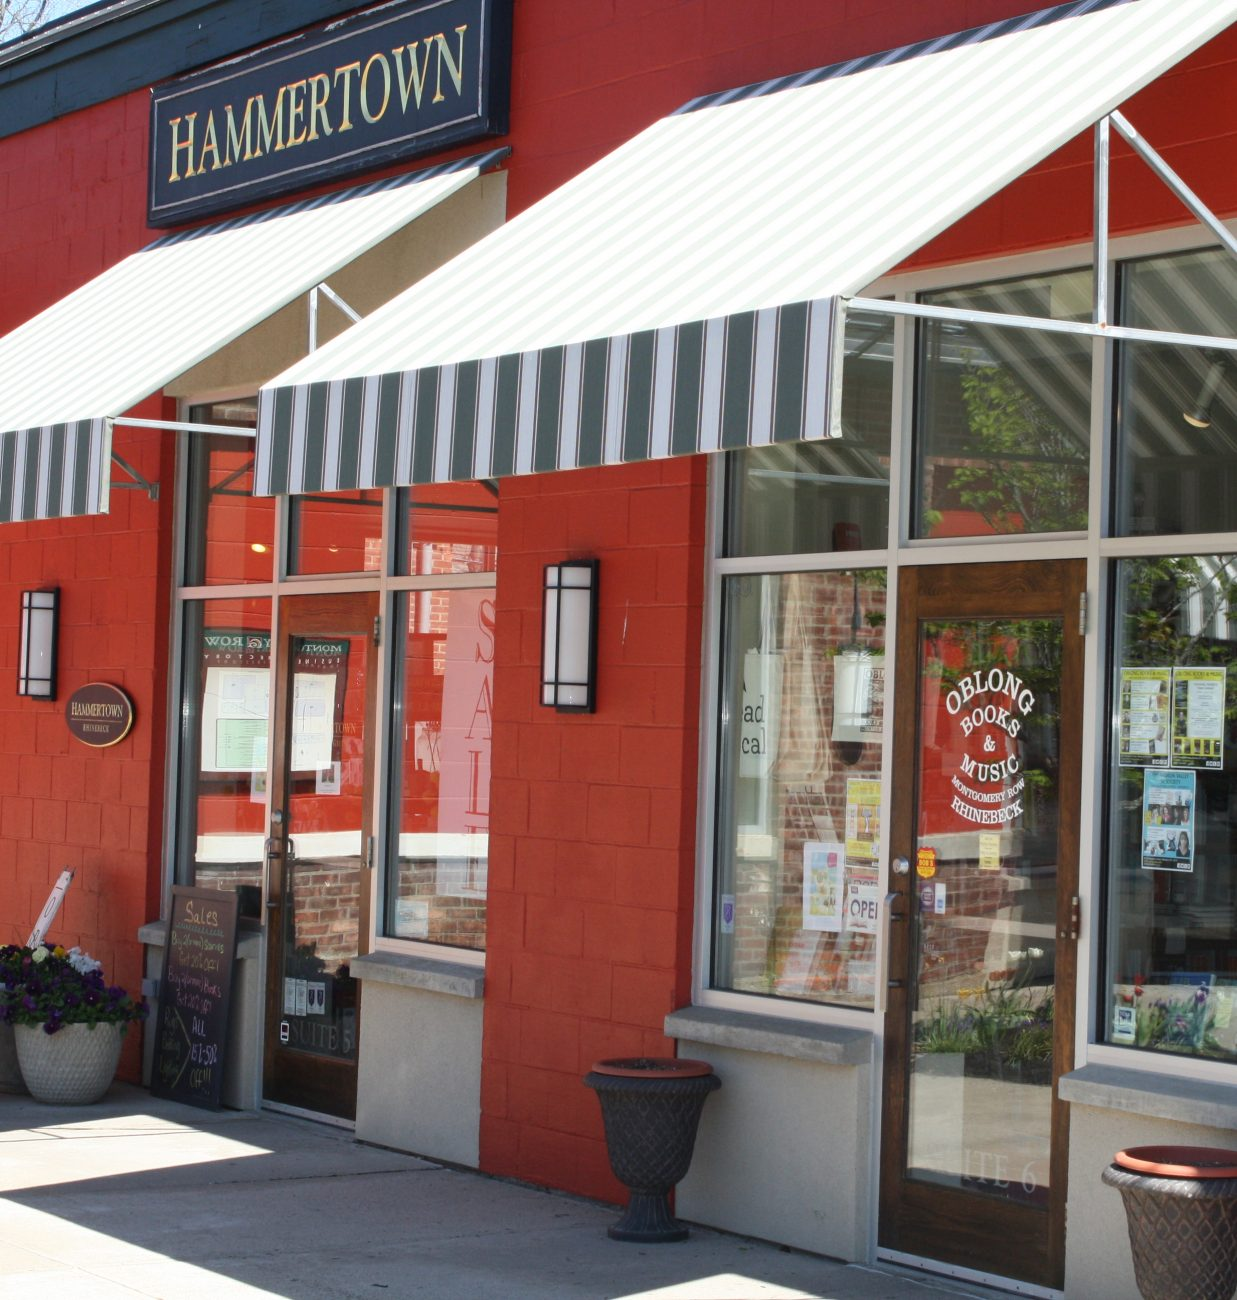 Hammertow and Oblong Books